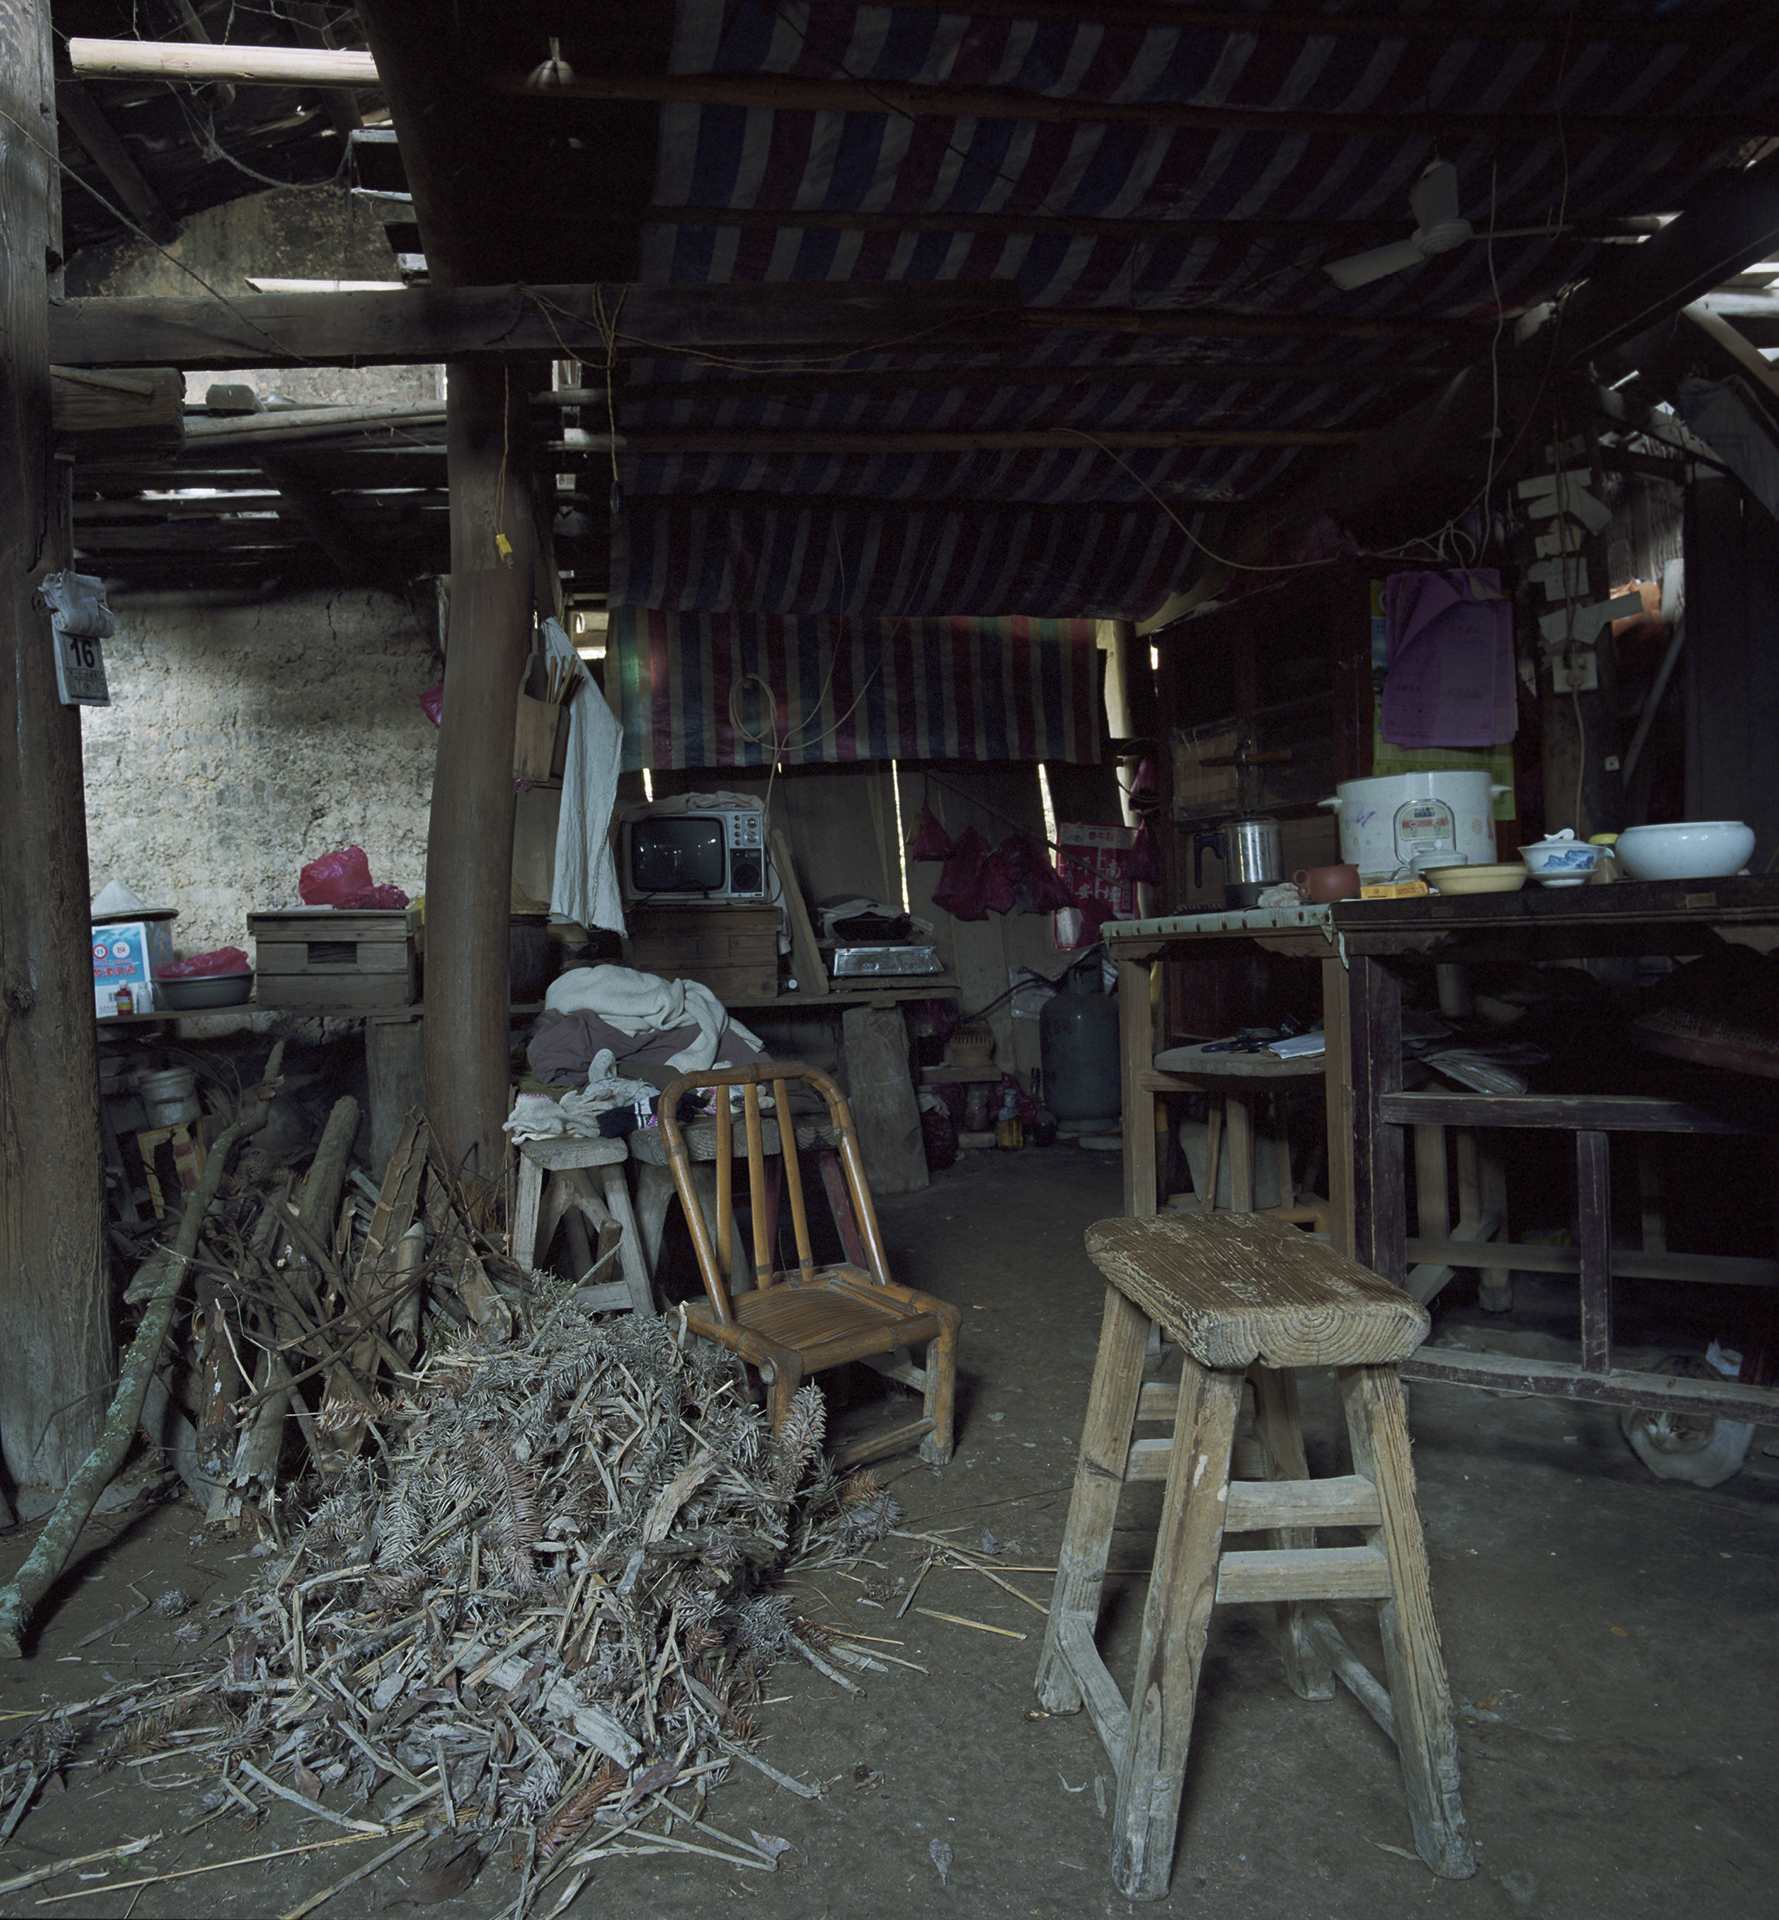 2009 Fujian - enough firewood to heat the stove in this very airy home.